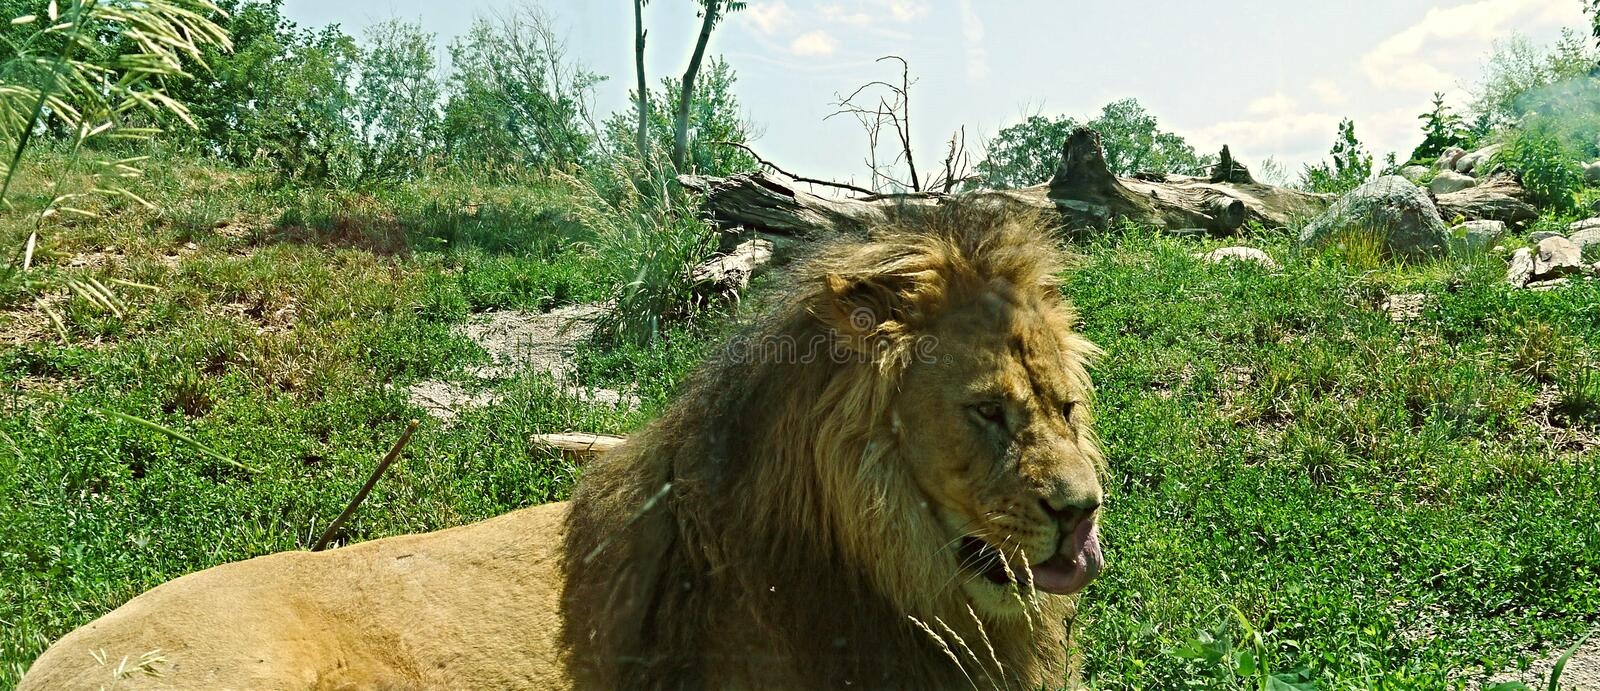 Lion With His Tongue Out arkivbilder